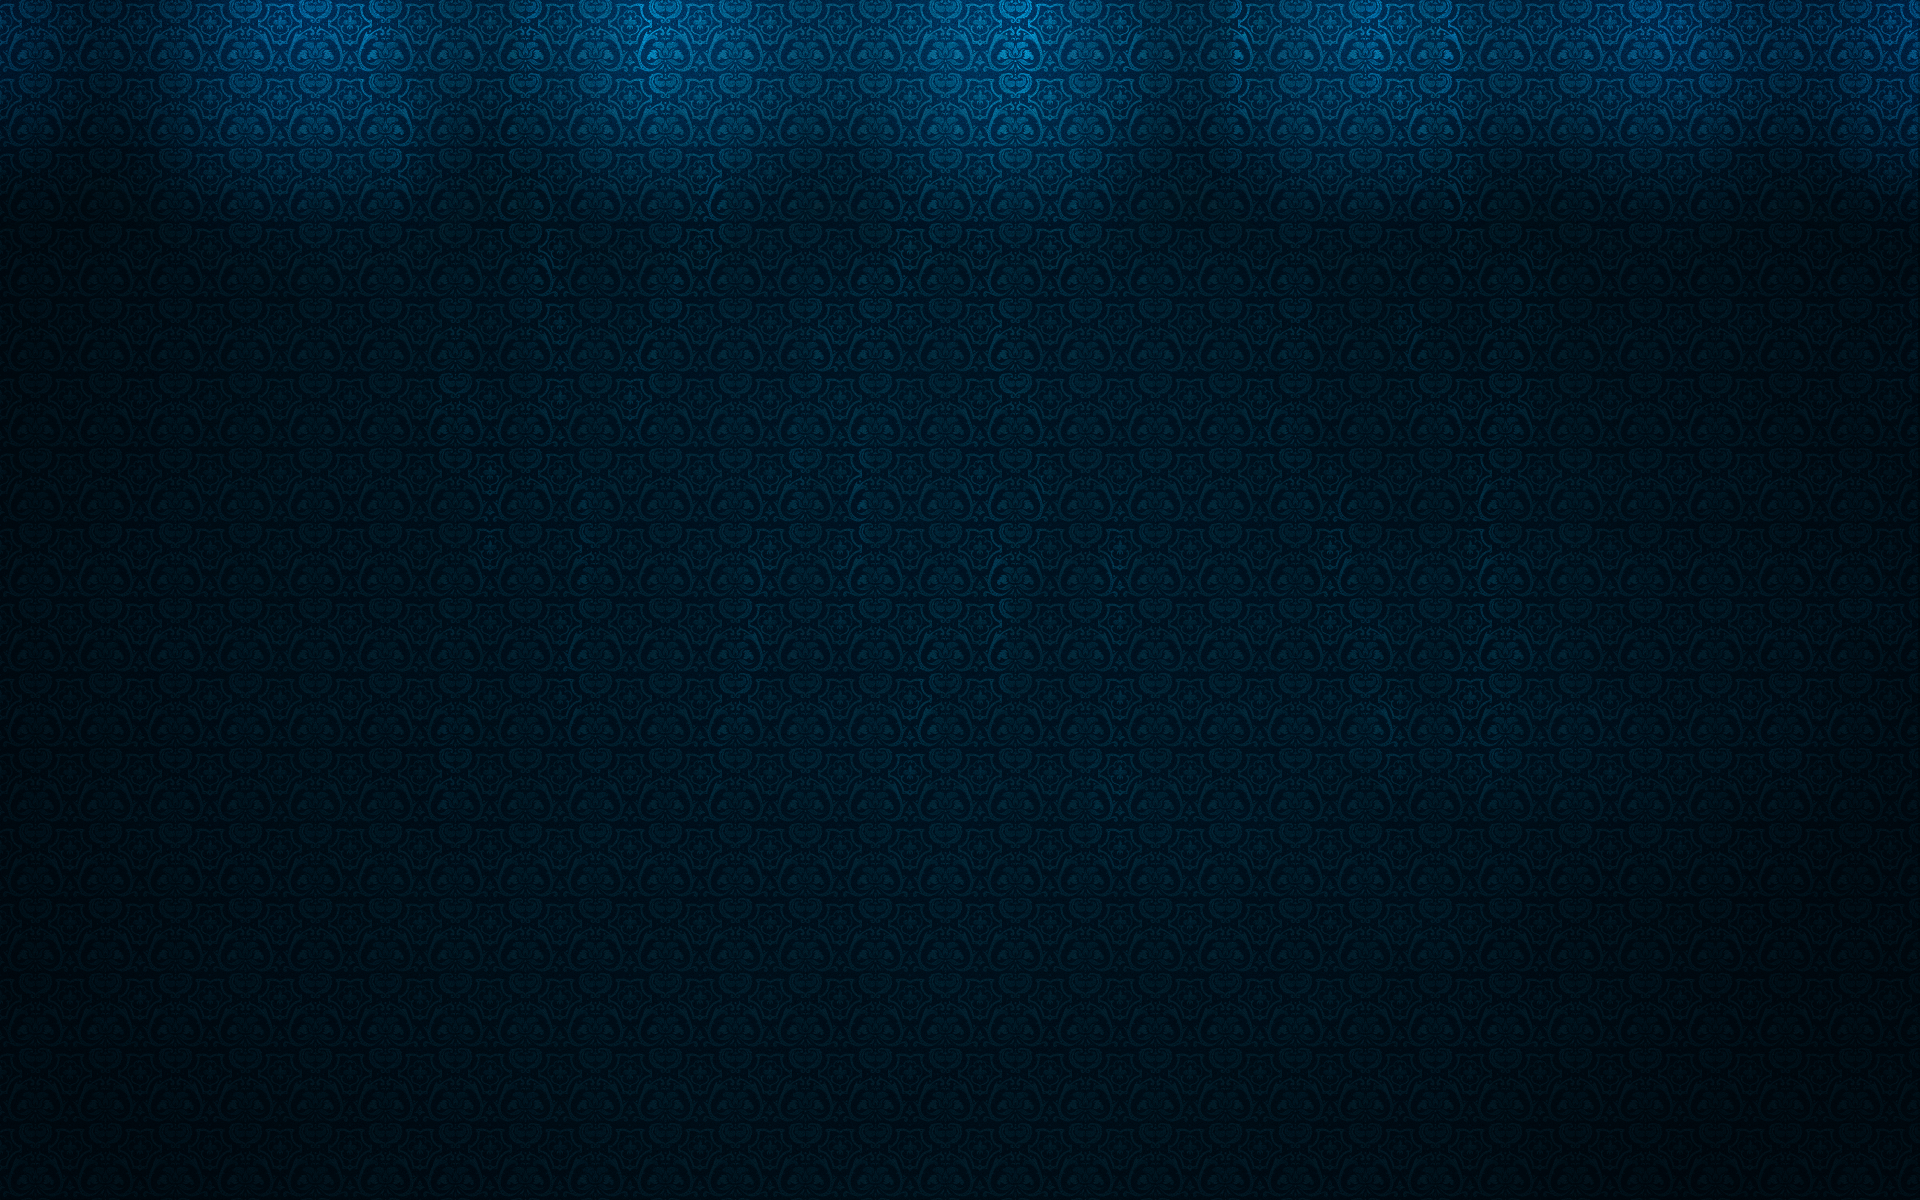 noir blue dark desktop wallpaper download noir blue dark wallpaper in 1920x1200